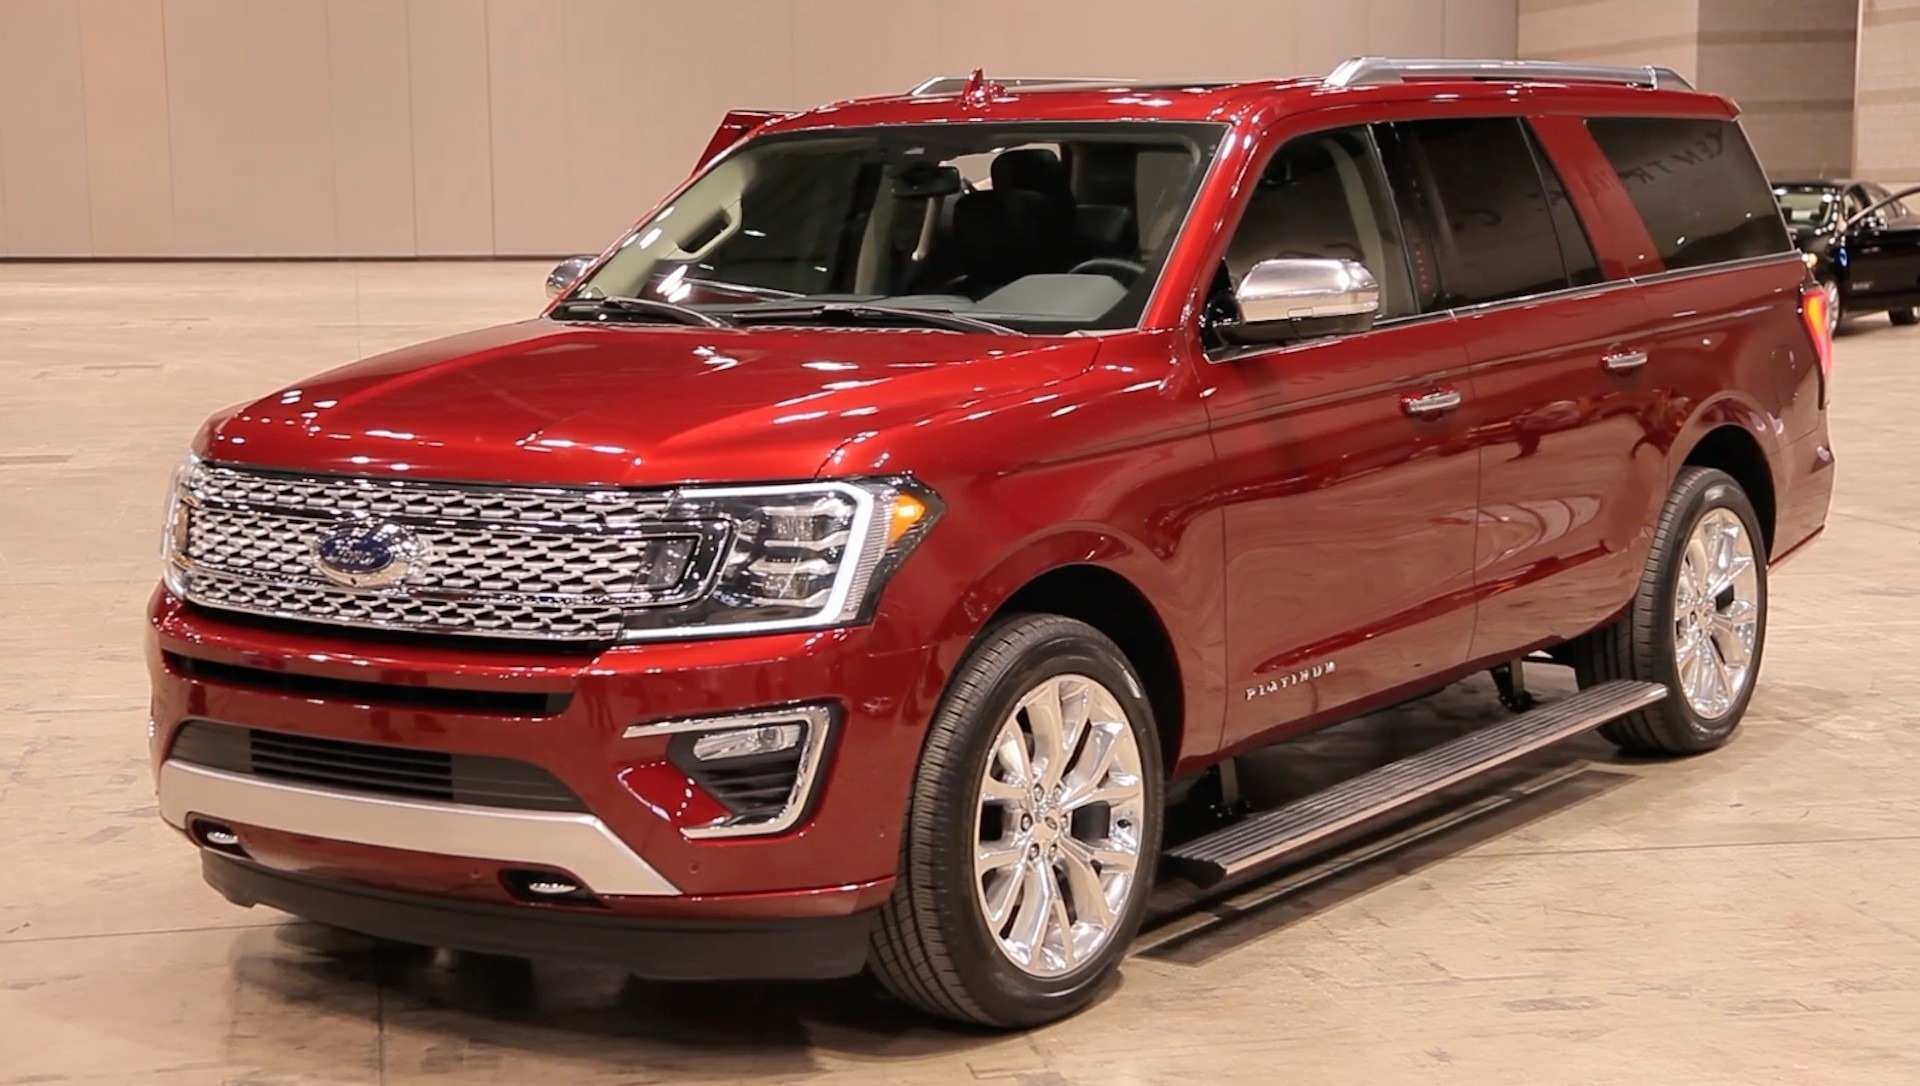 56 Gallery of Ford 2019 Interior Picture Release Date And Review Rumors for Ford 2019 Interior Picture Release Date And Review